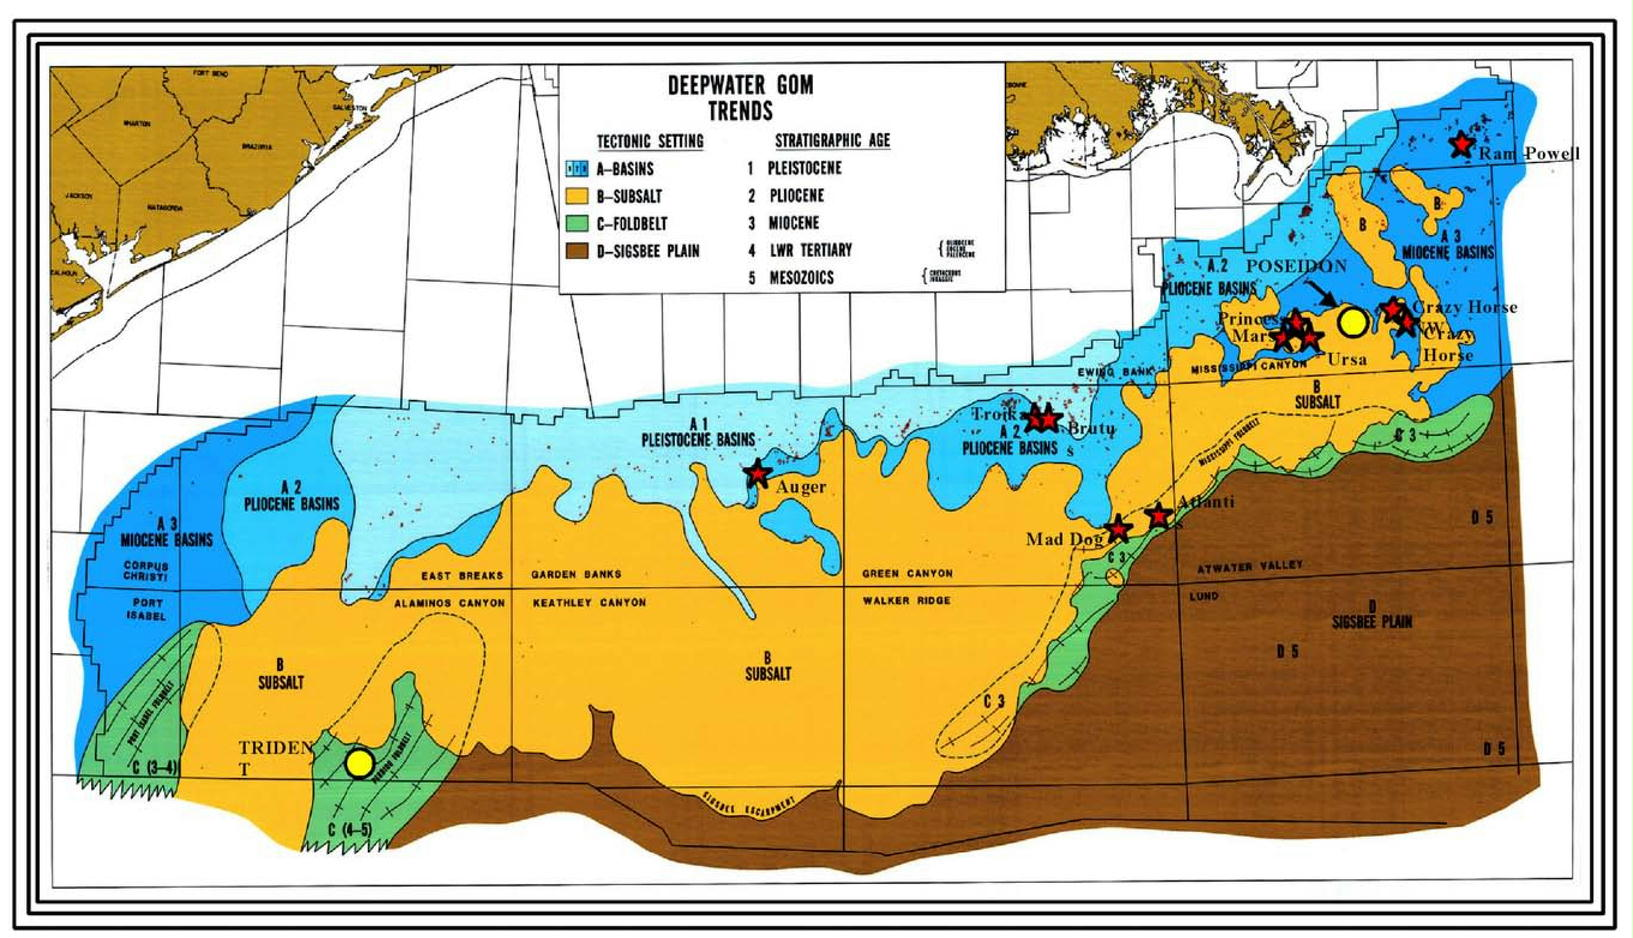 Global and Gulf of Mexico Deep Water Basin Evaluation | Petroleum